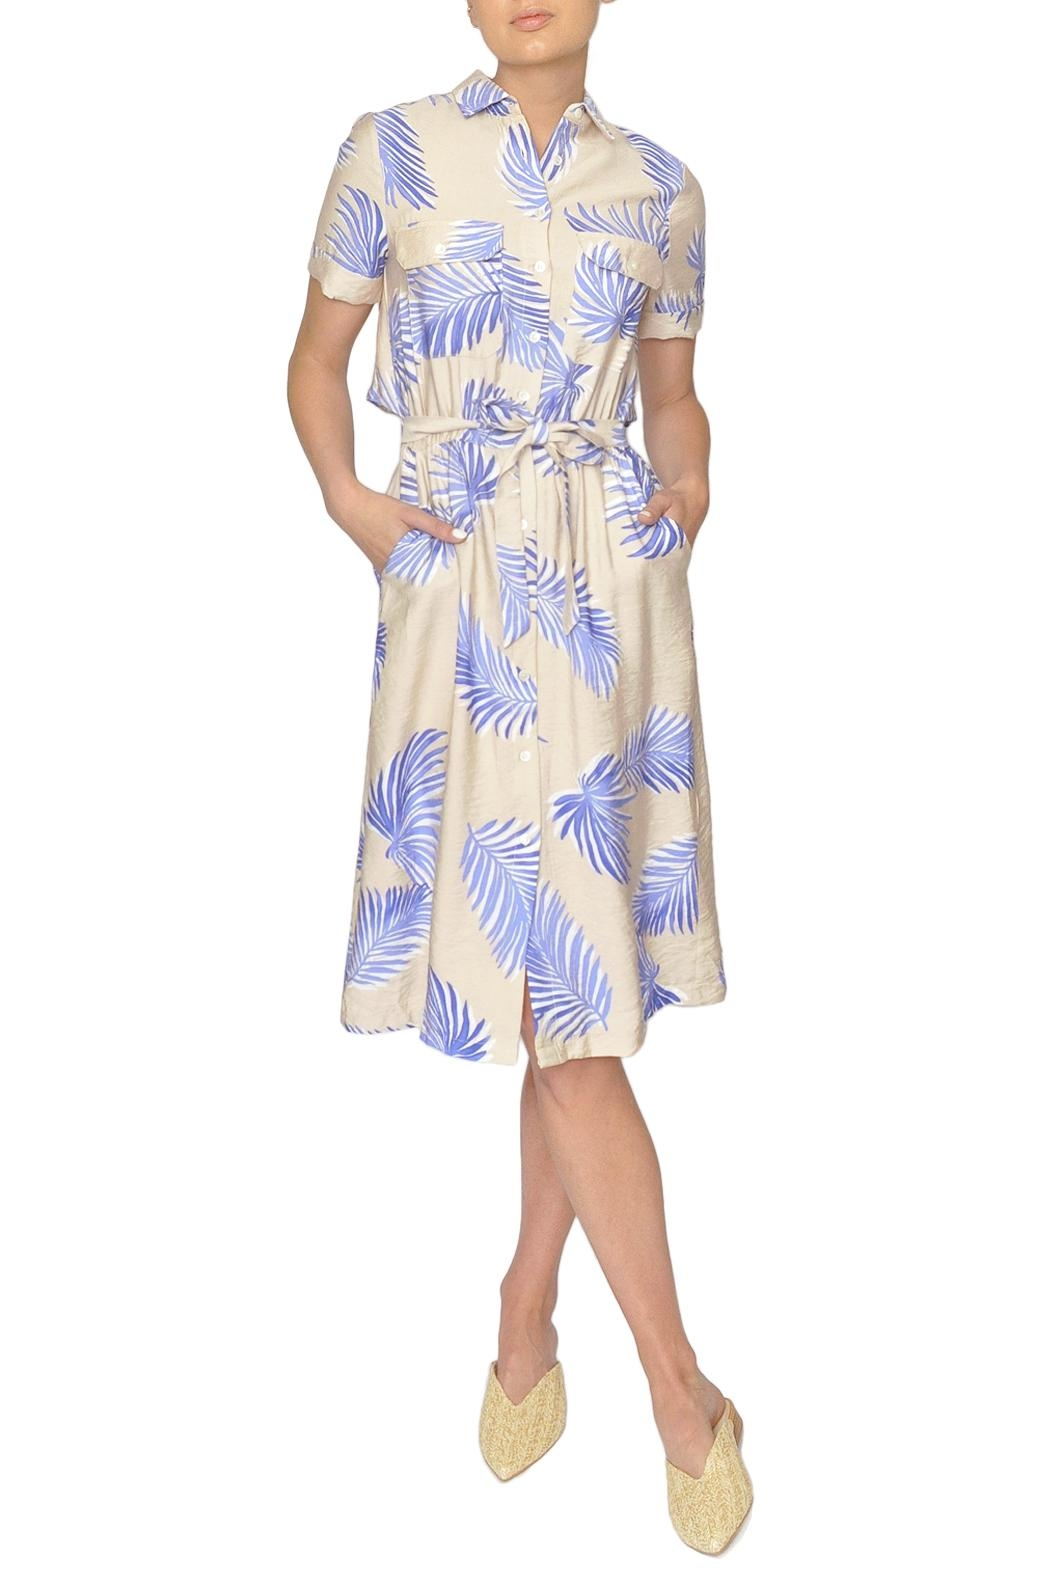 FRNCH Palm Print Dress - Main Image